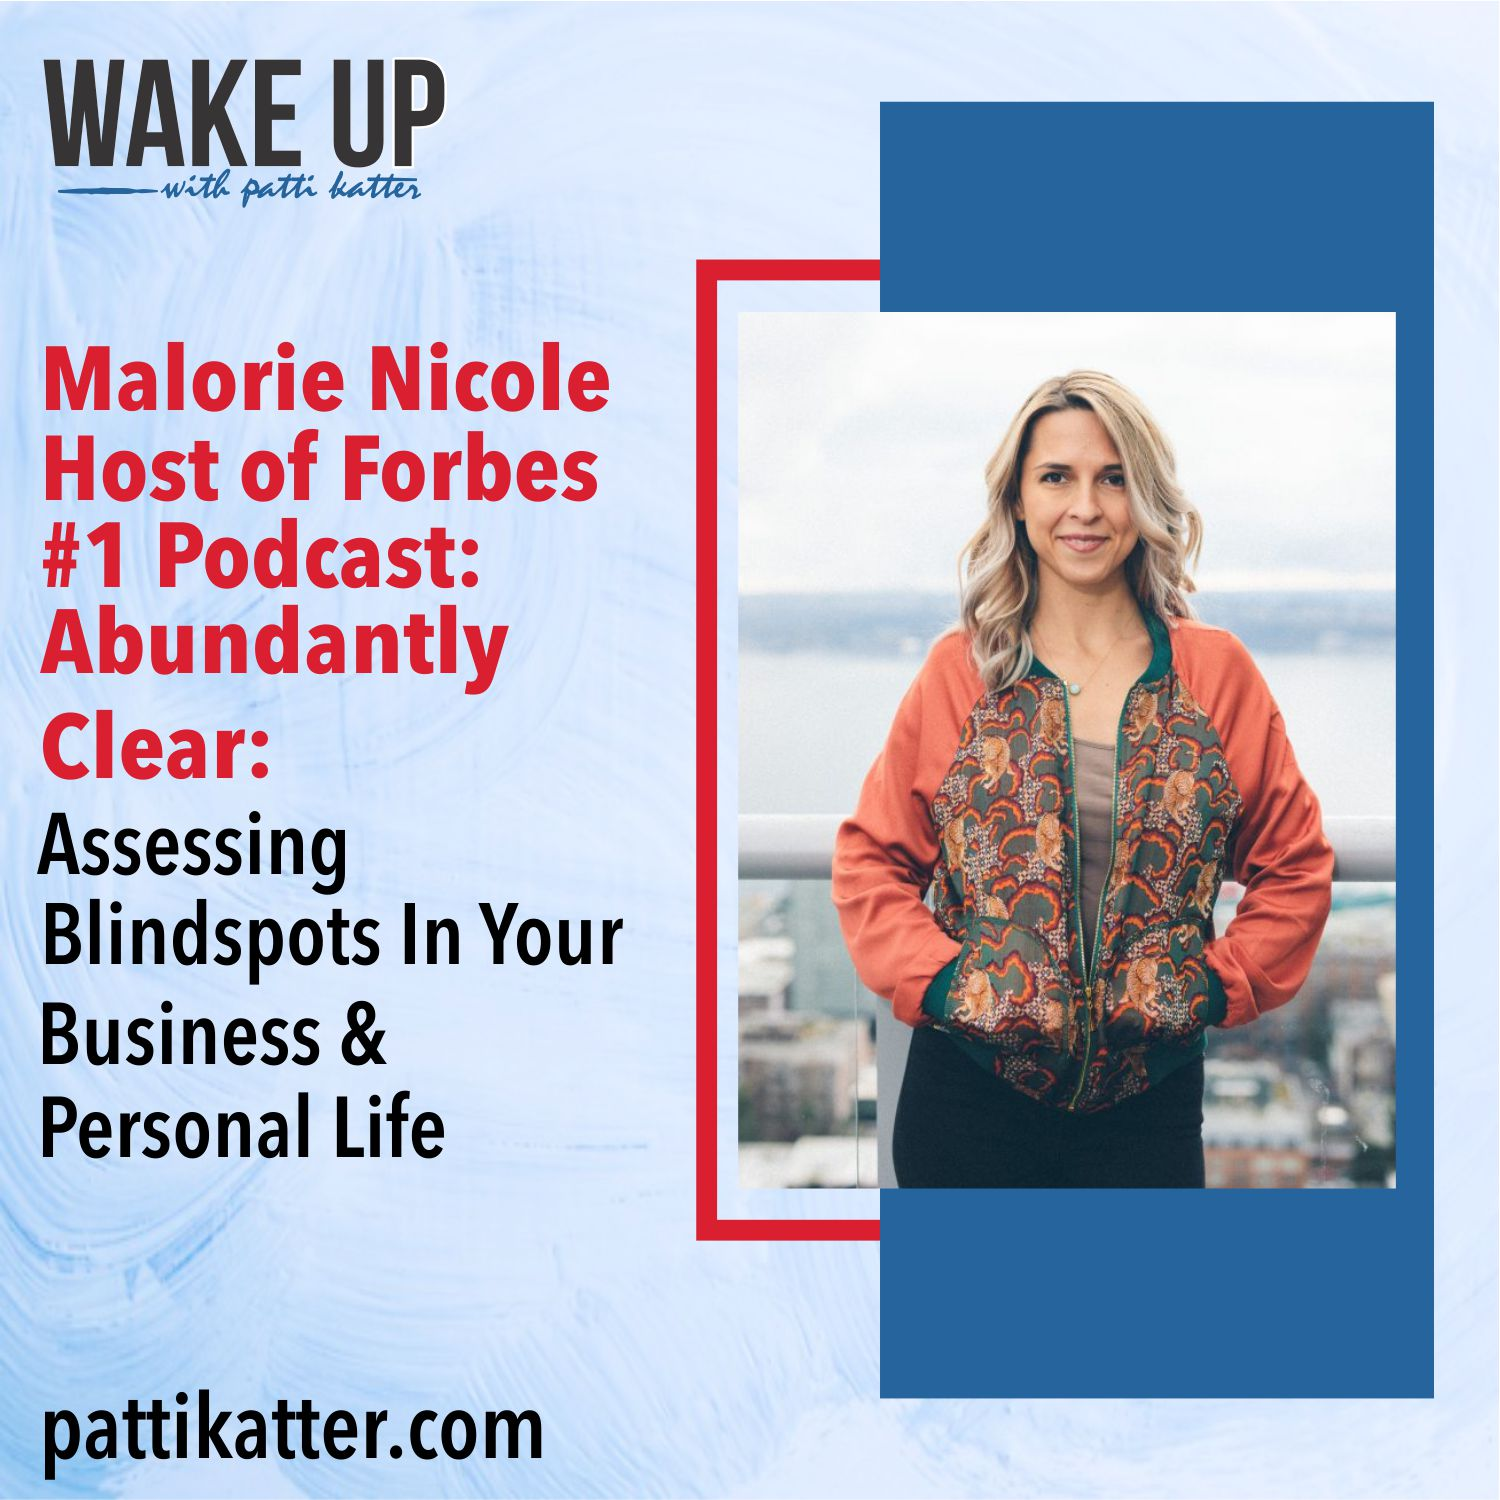 Malorie Nicole Host of Forbes #1 Podcast: Abundantly Clear: Assessing Blindspots In Your Business & Personal Life